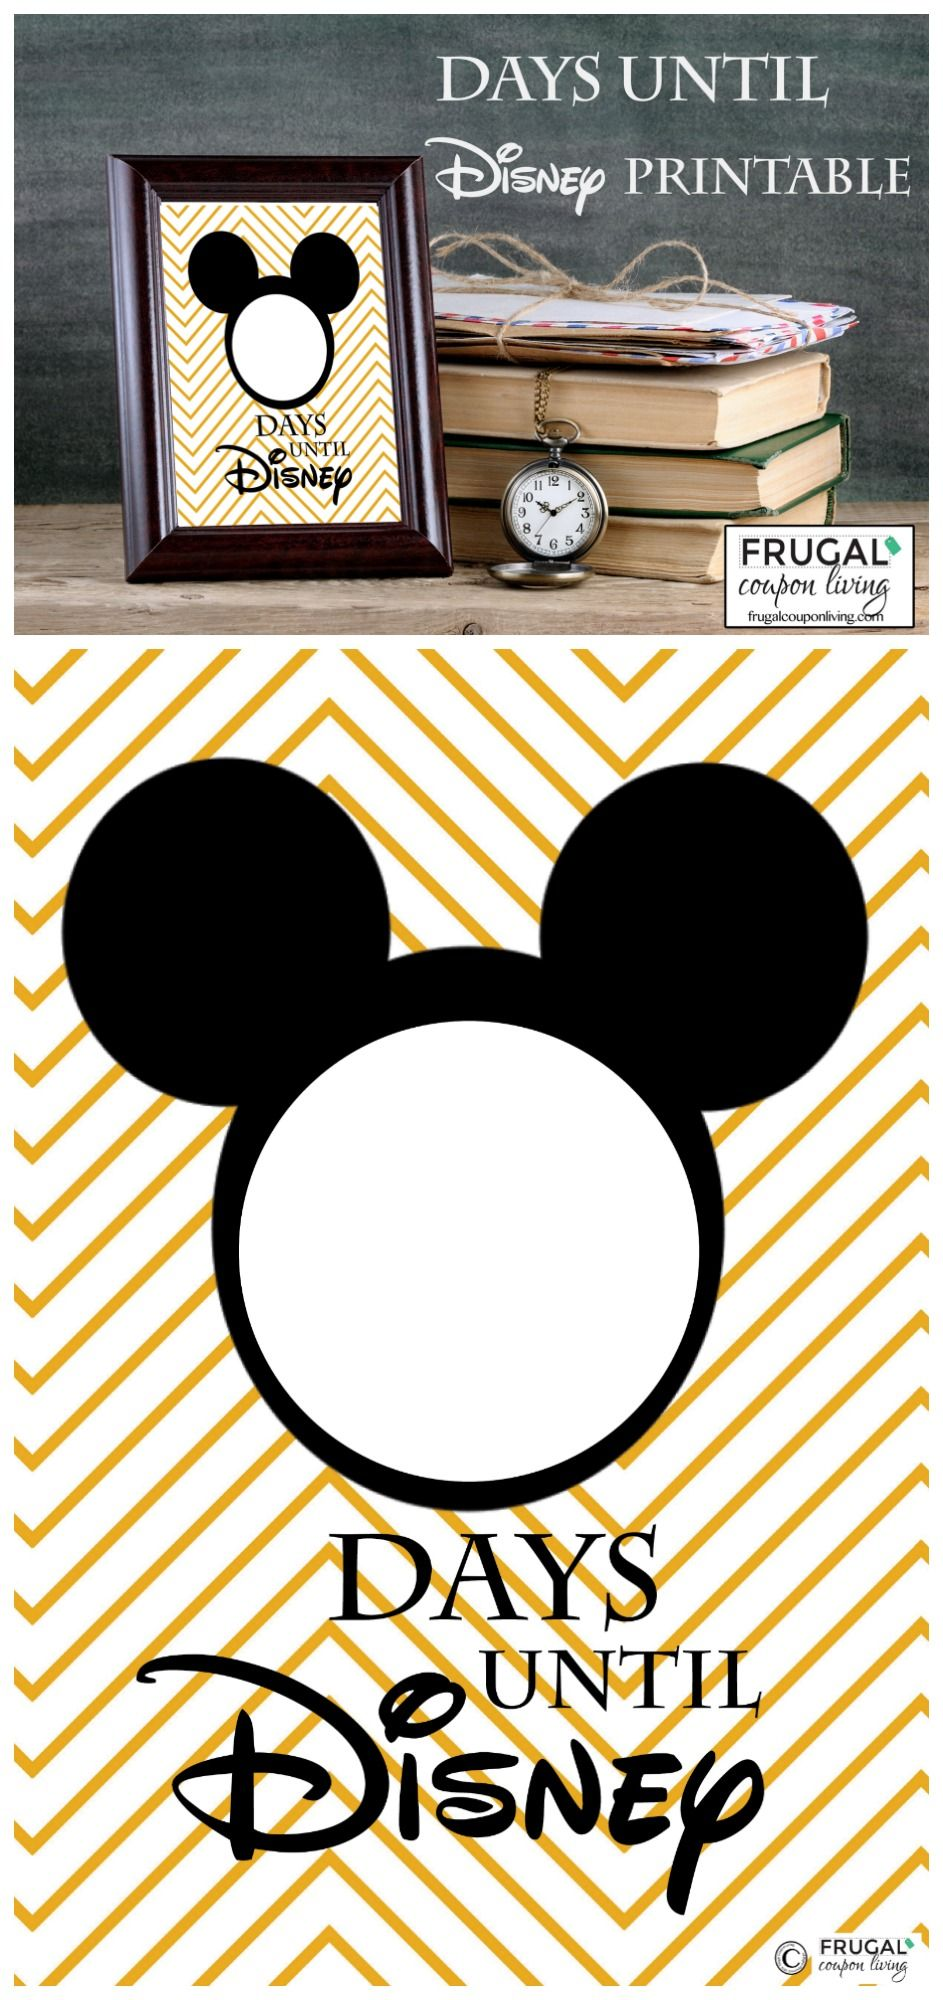 graphic about Disneyland Printable Coupons known as No cost Countdown in the direction of Disney Printable Excellent of Frugal Coupon